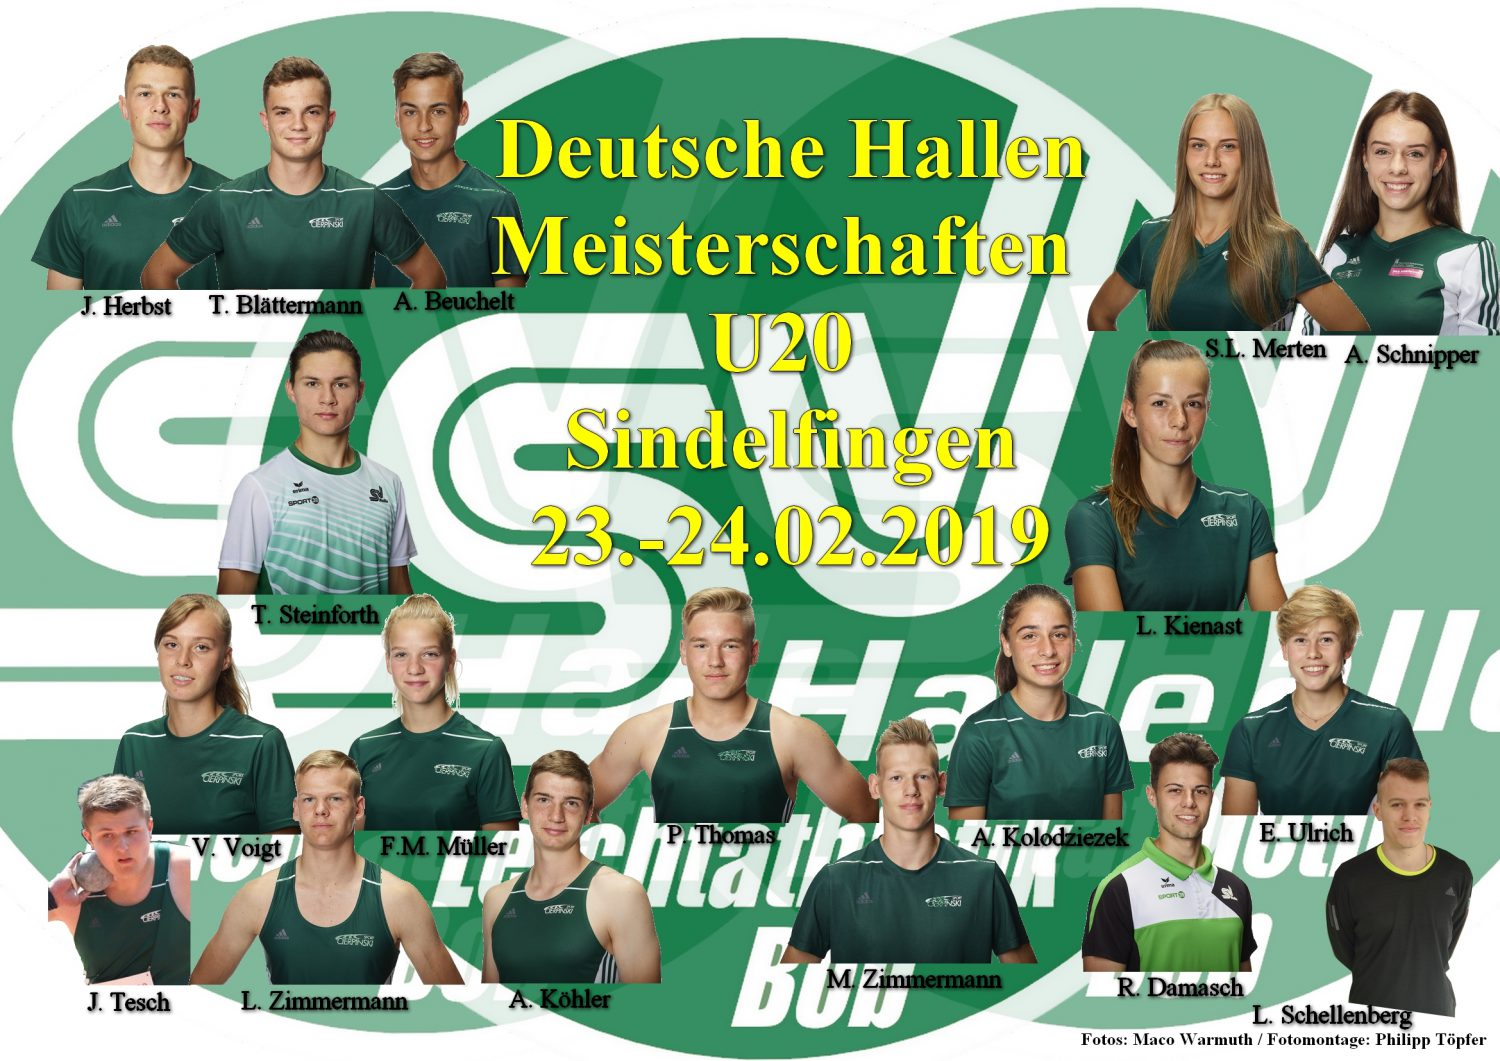 2019.02.23 U20 HDM Sindelfingen - Fotos Marco Warmuth - Collage Philipp Töpfer